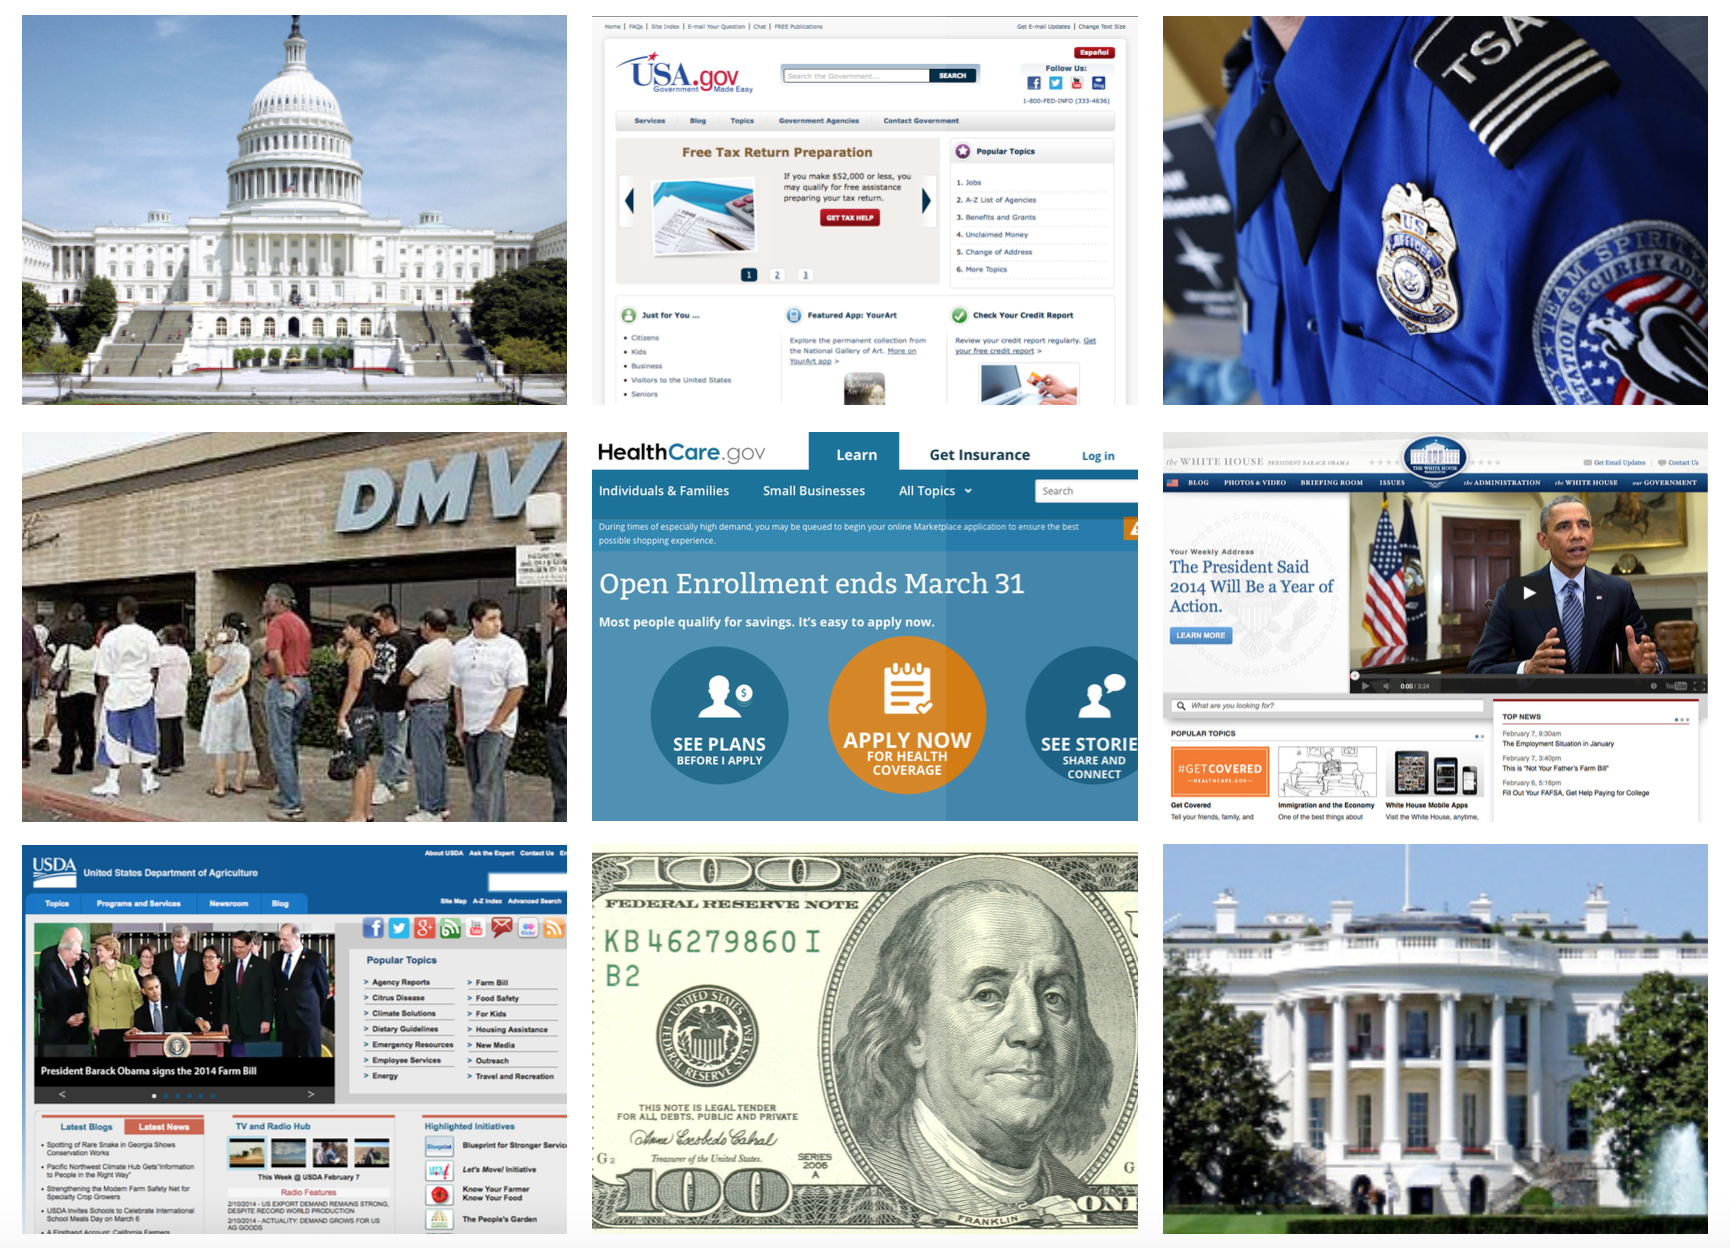 Visual audit of government websites, money, uniforms, and architecture